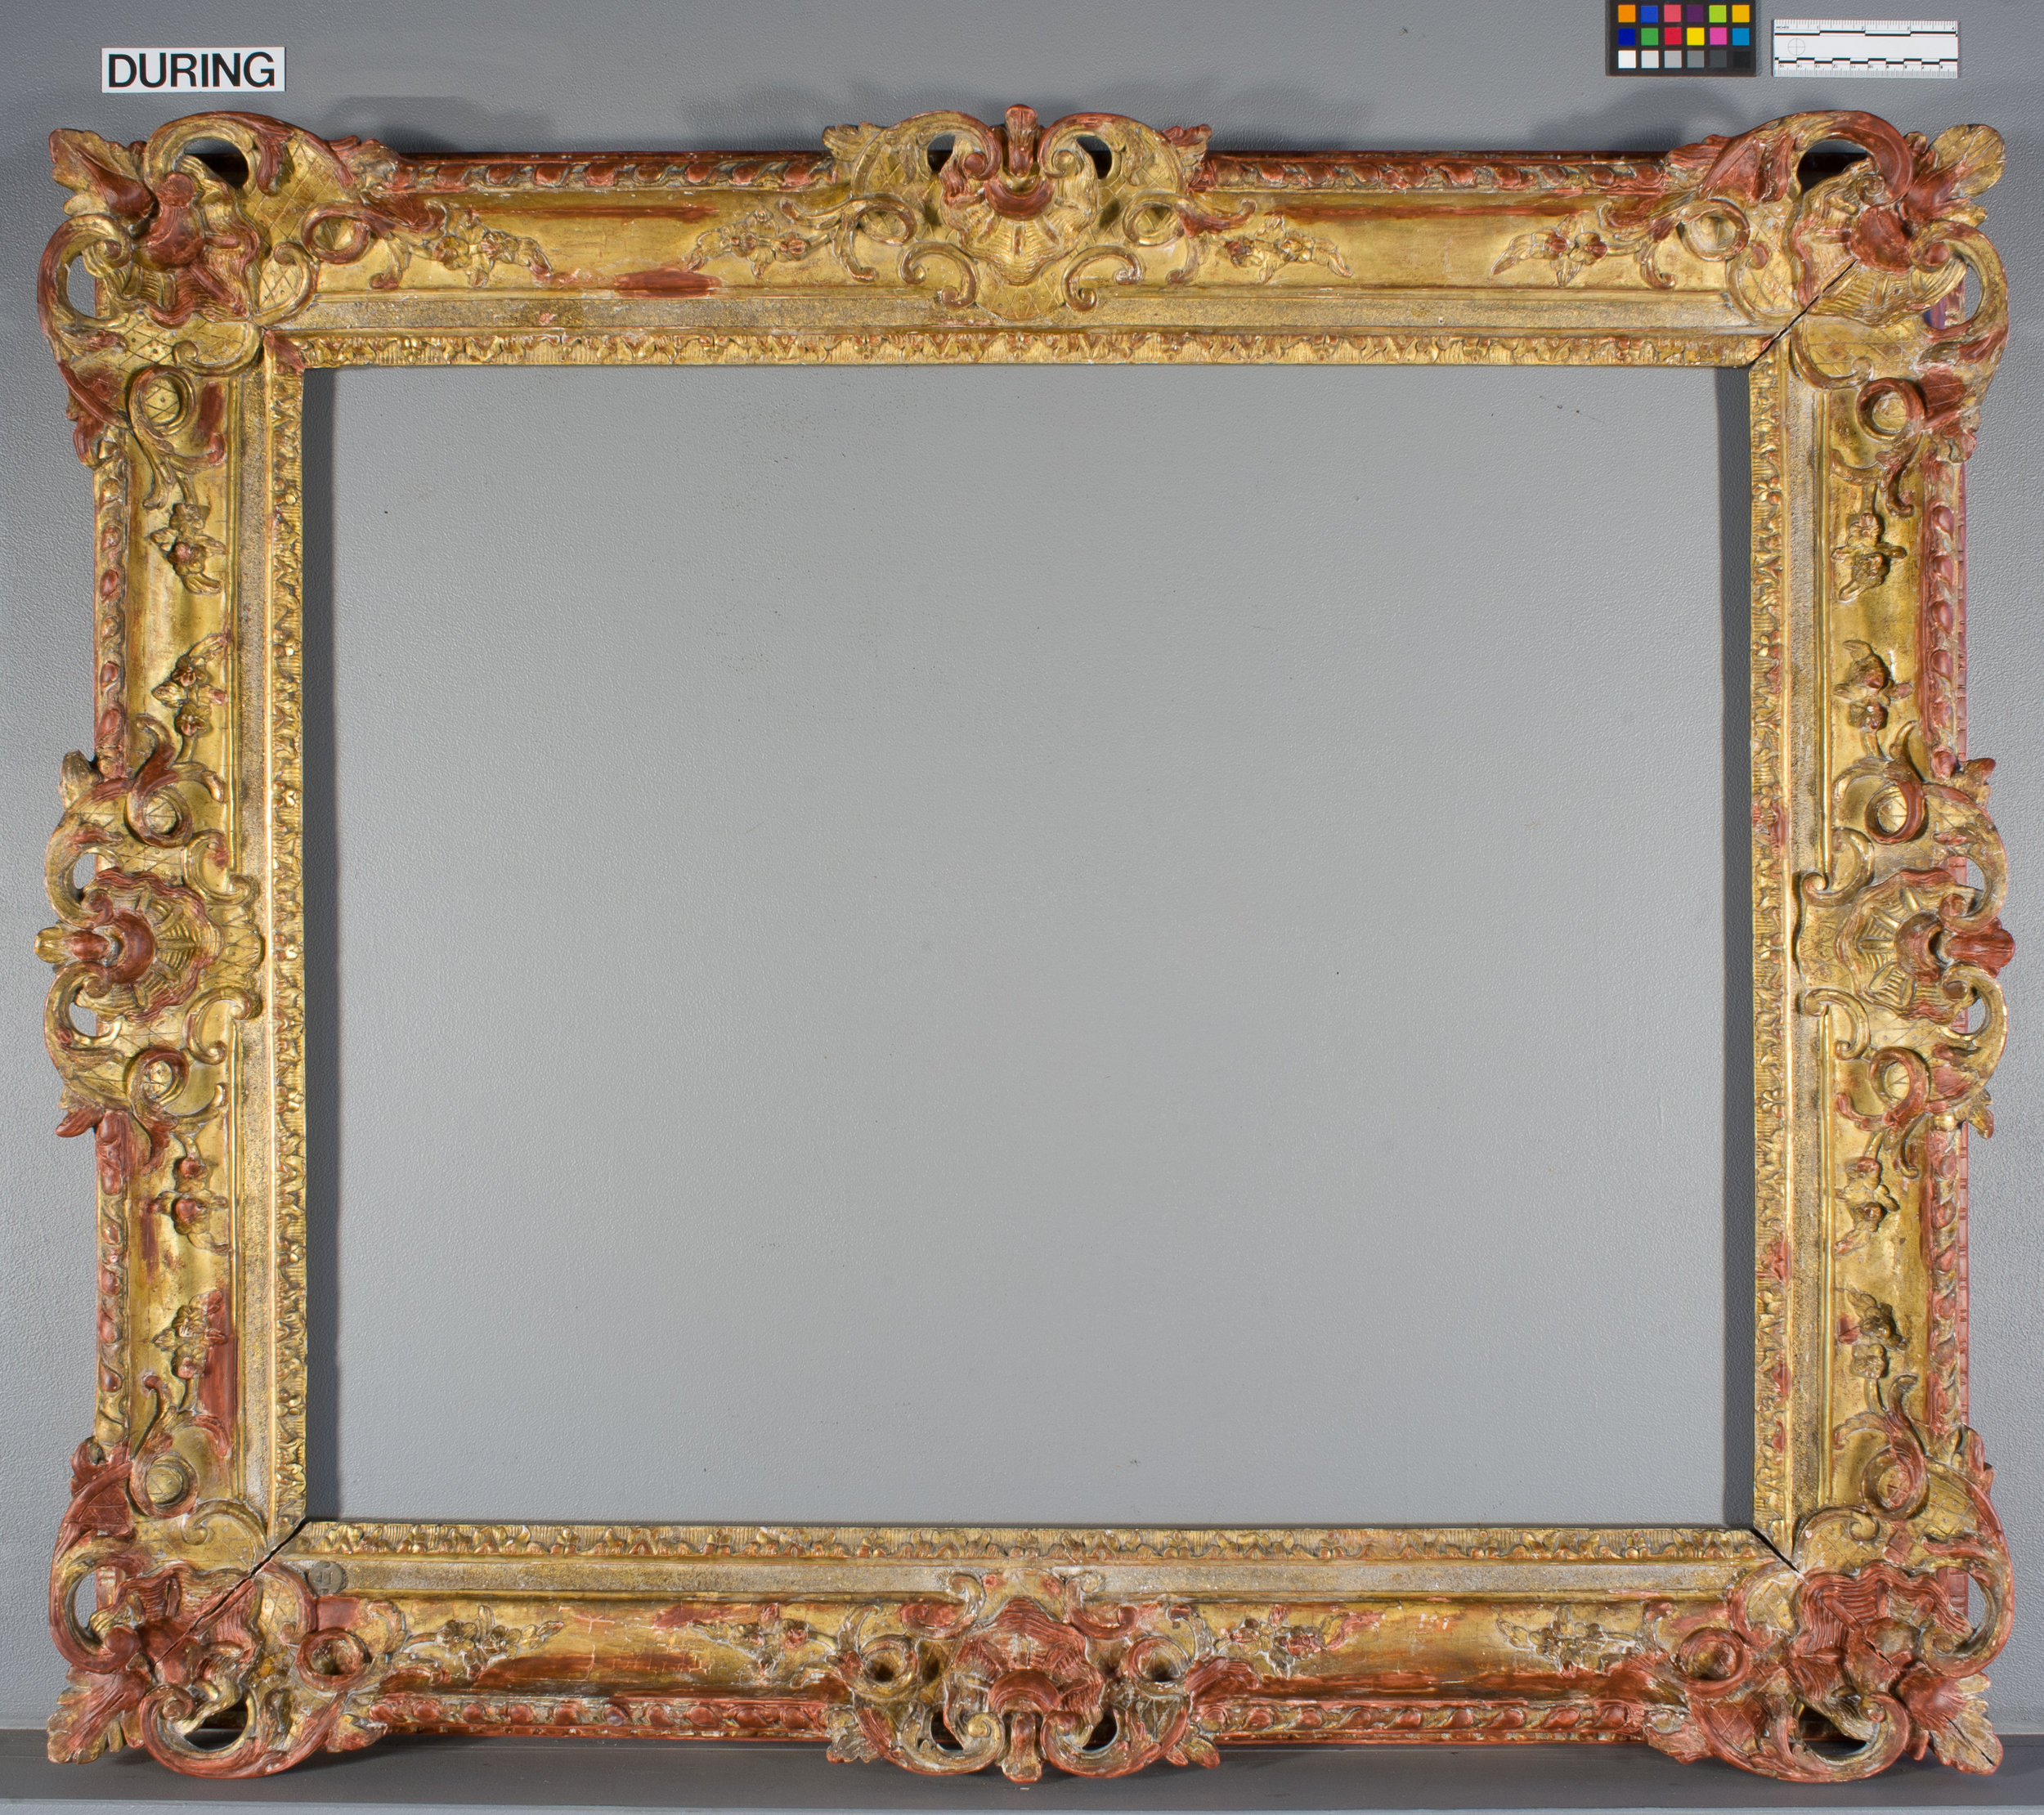 French_Frame-02-DT-red-bole